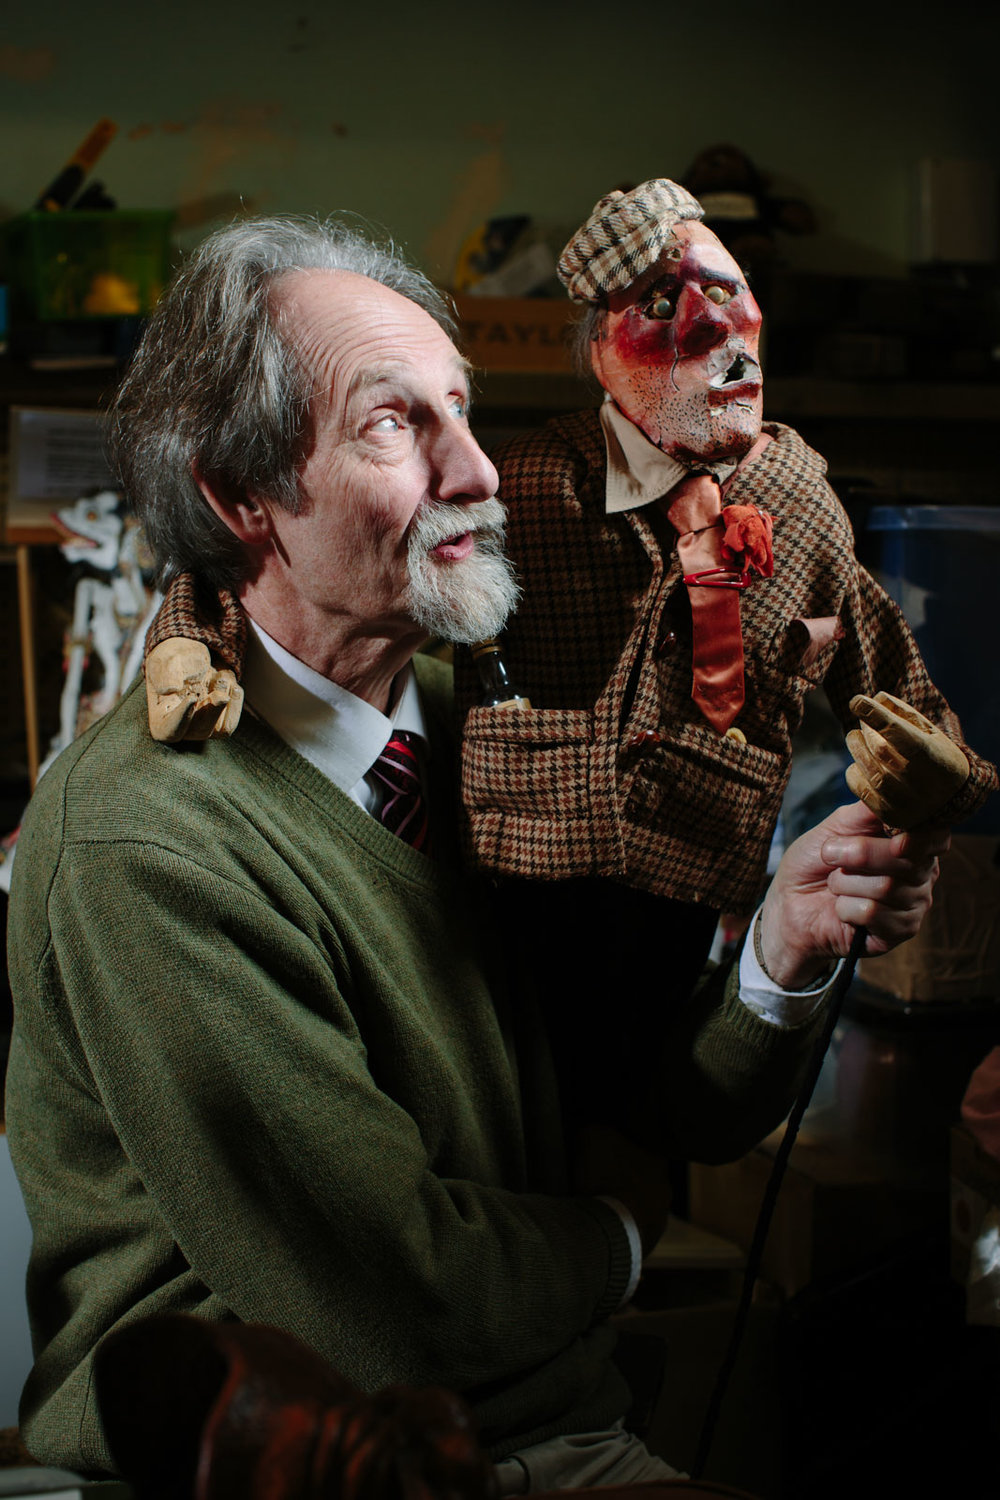 Malcolm from Scottish Mask and Puppet Centre holding up one of the puppets.